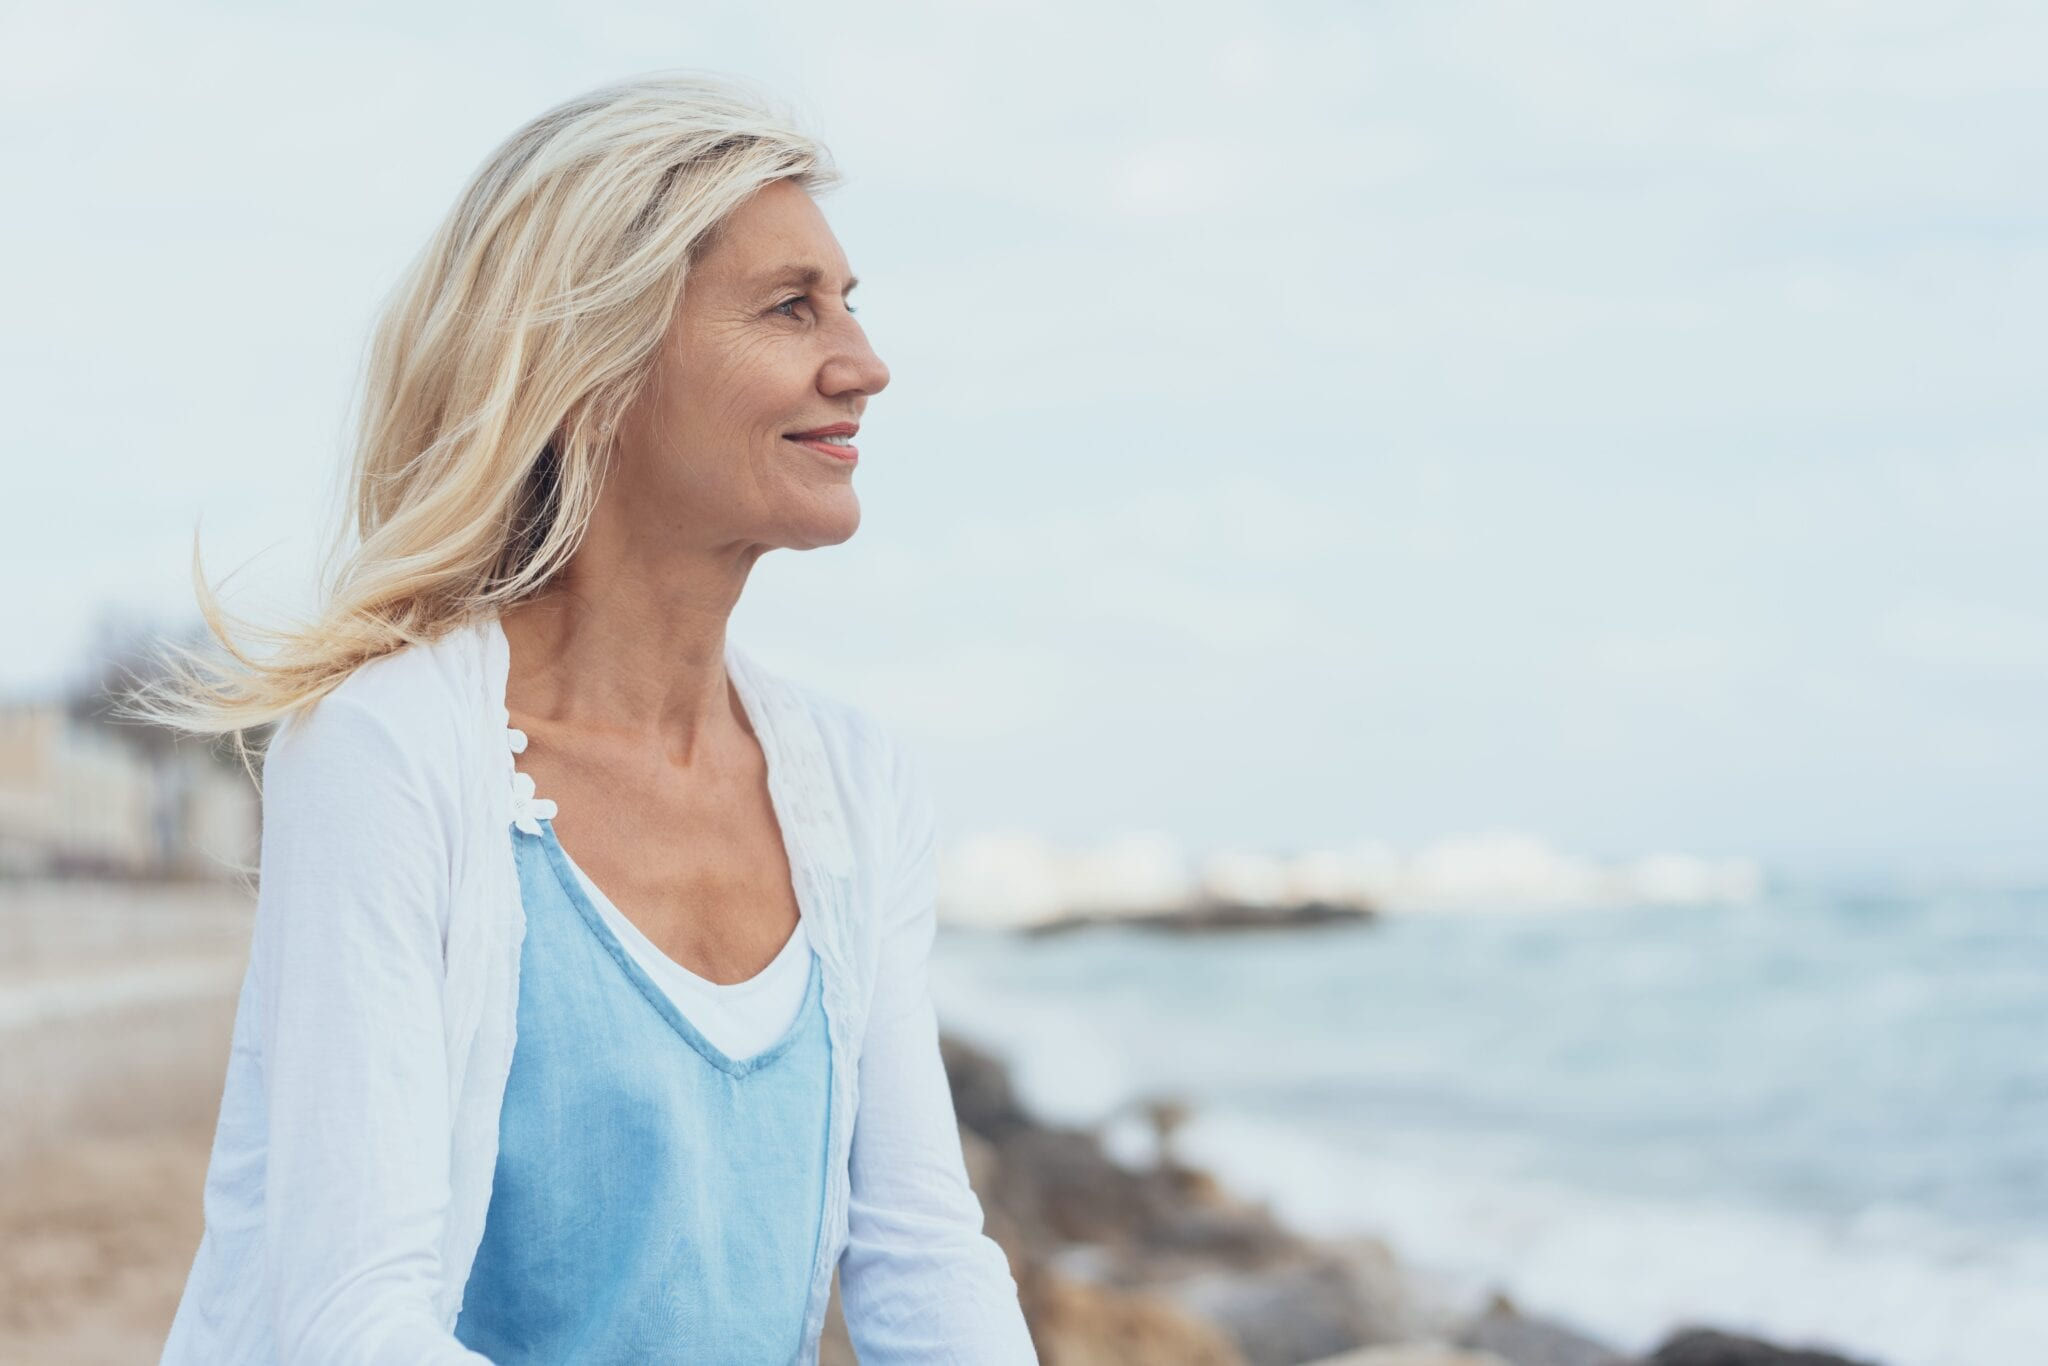 Attractive middle-aged blond woman at the seaside | Dr. Michelle